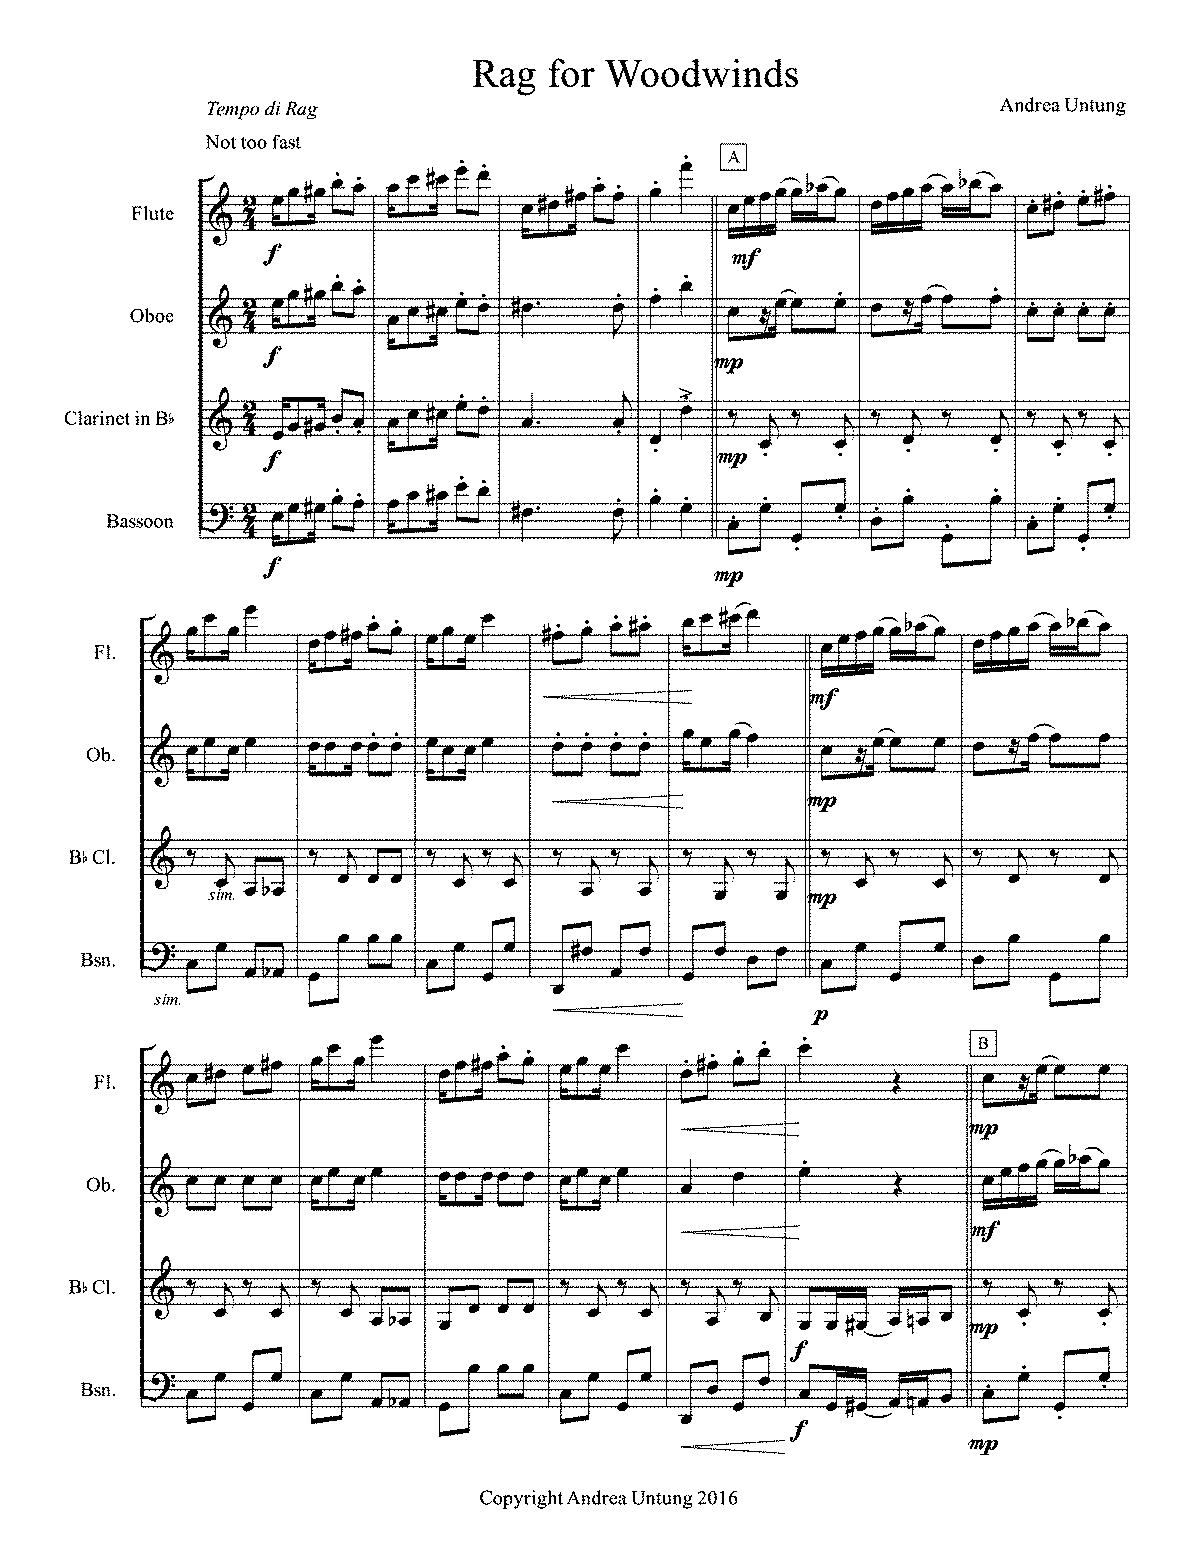 PMLP705388-Rag for Woodwinds Score.pdf